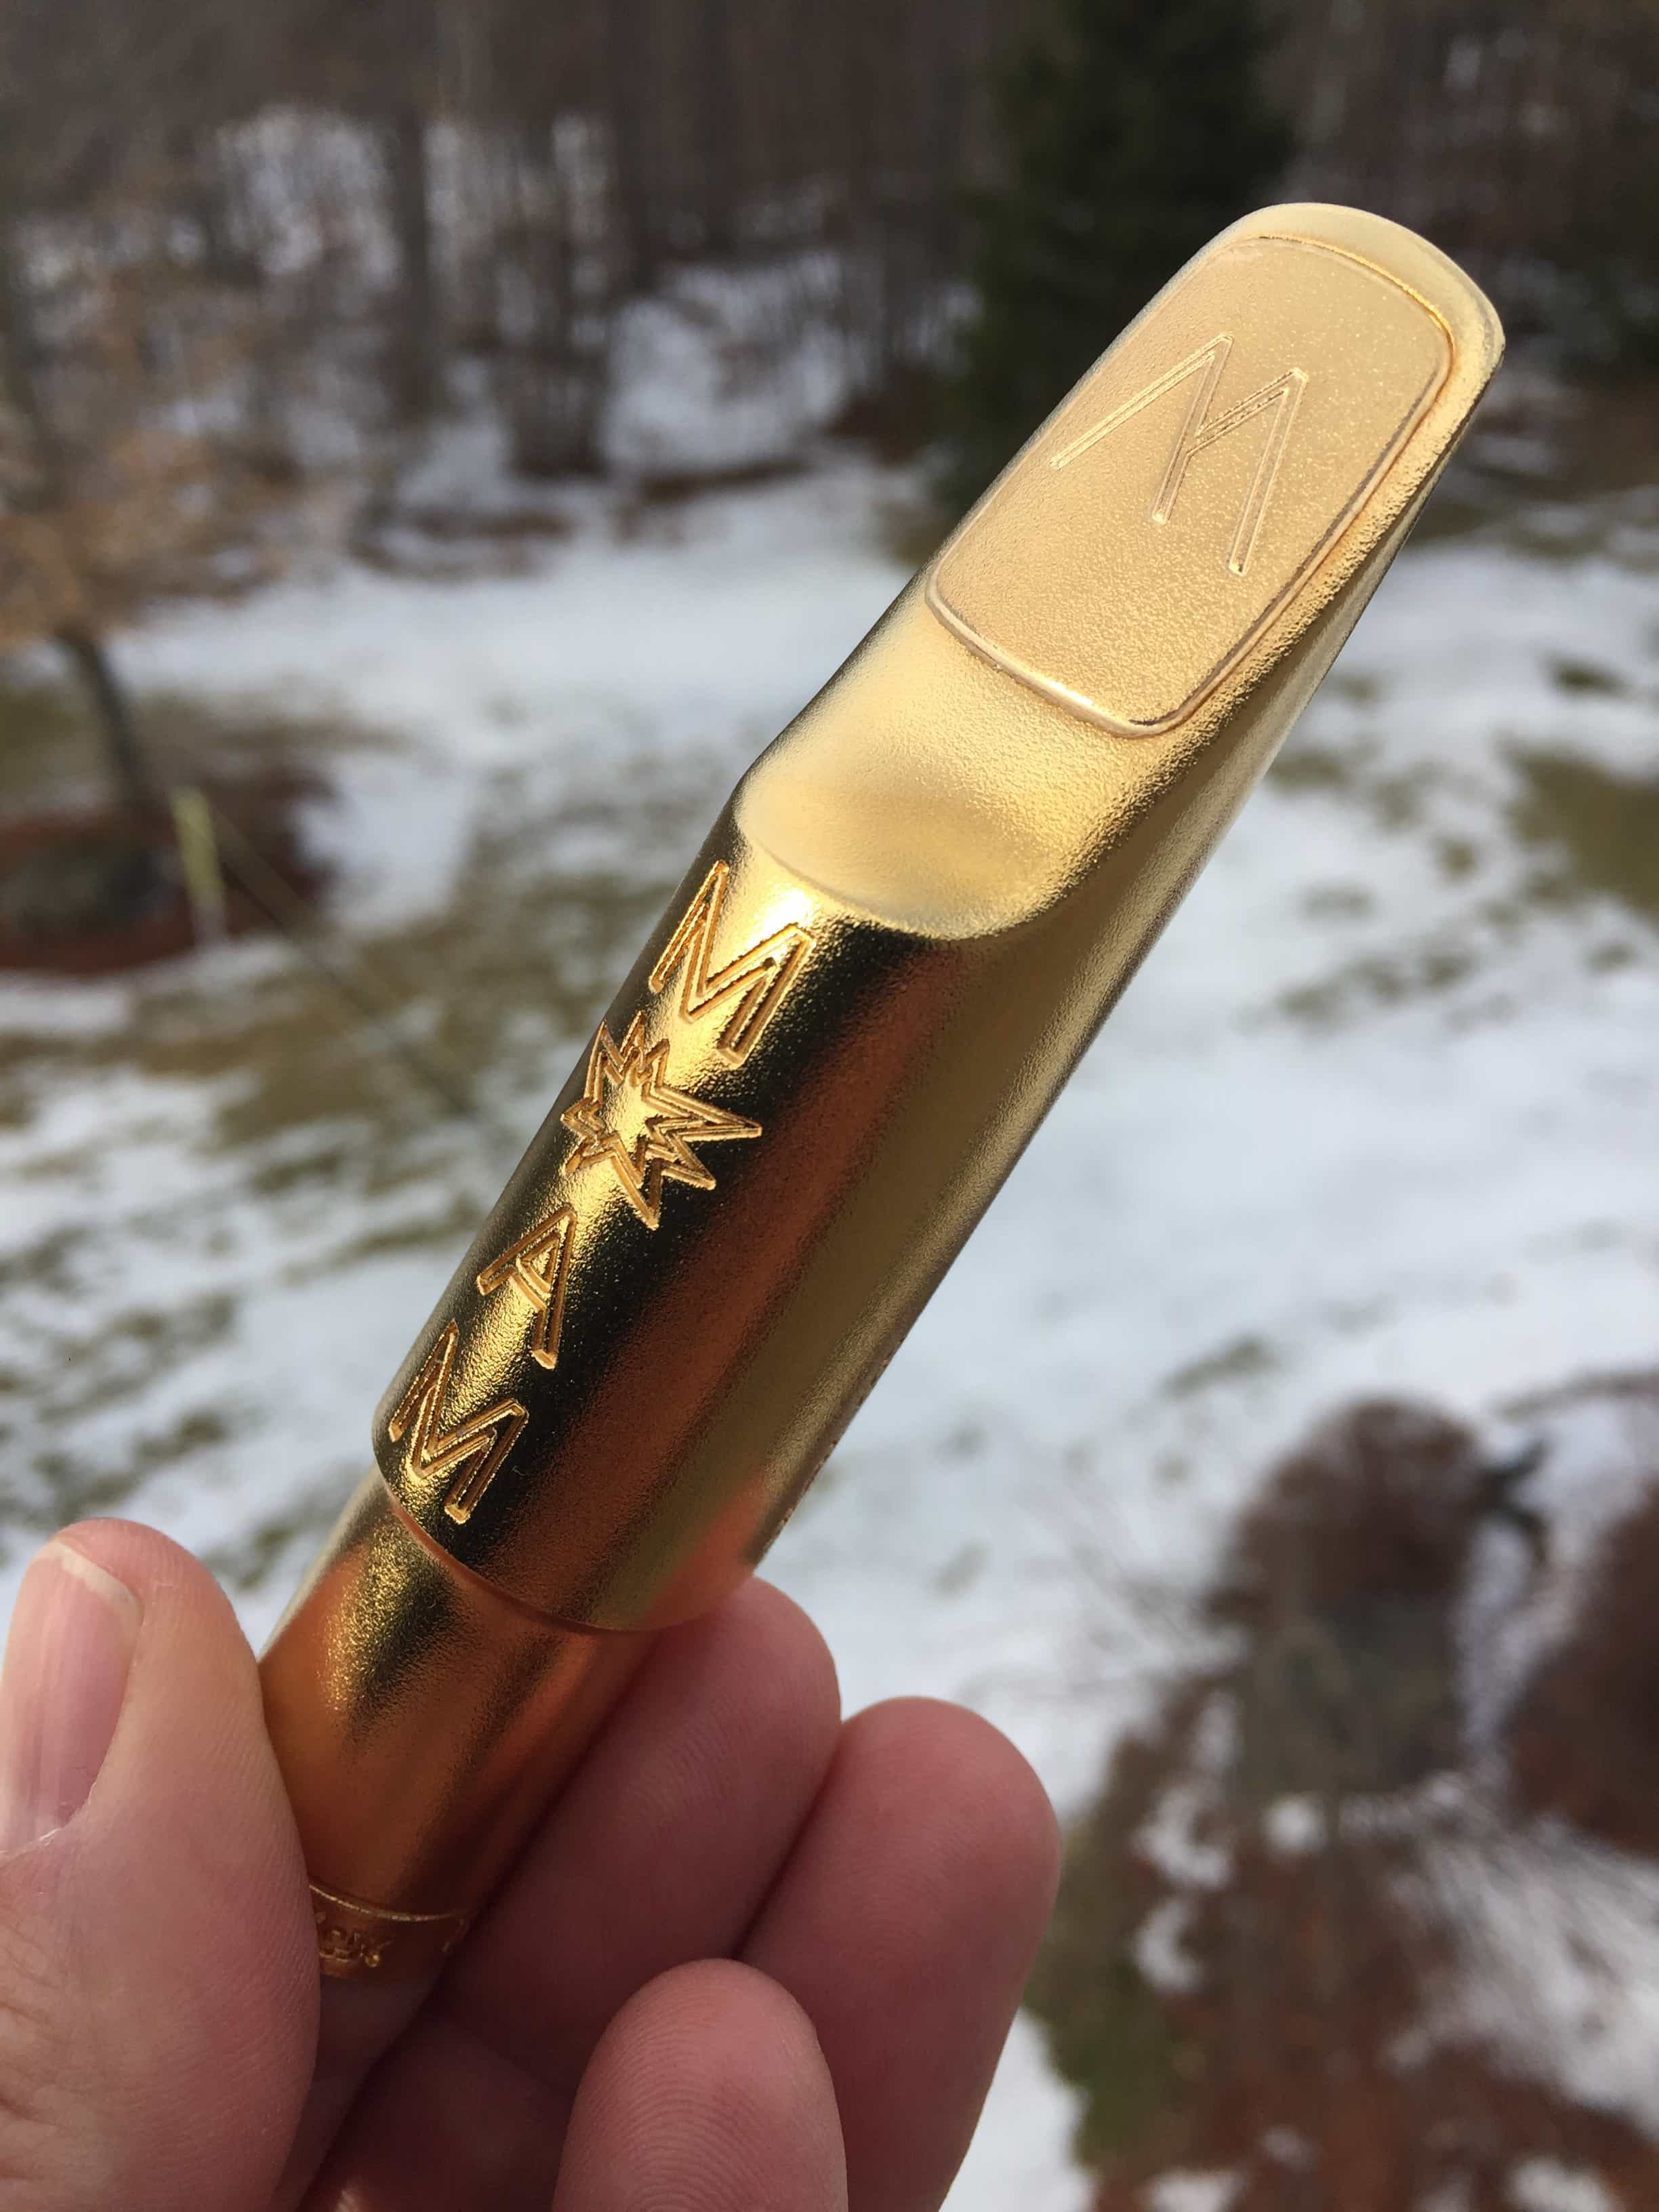 Westcoast Sax MOAM .110 Tenor Saxophone Mouthpiece Review